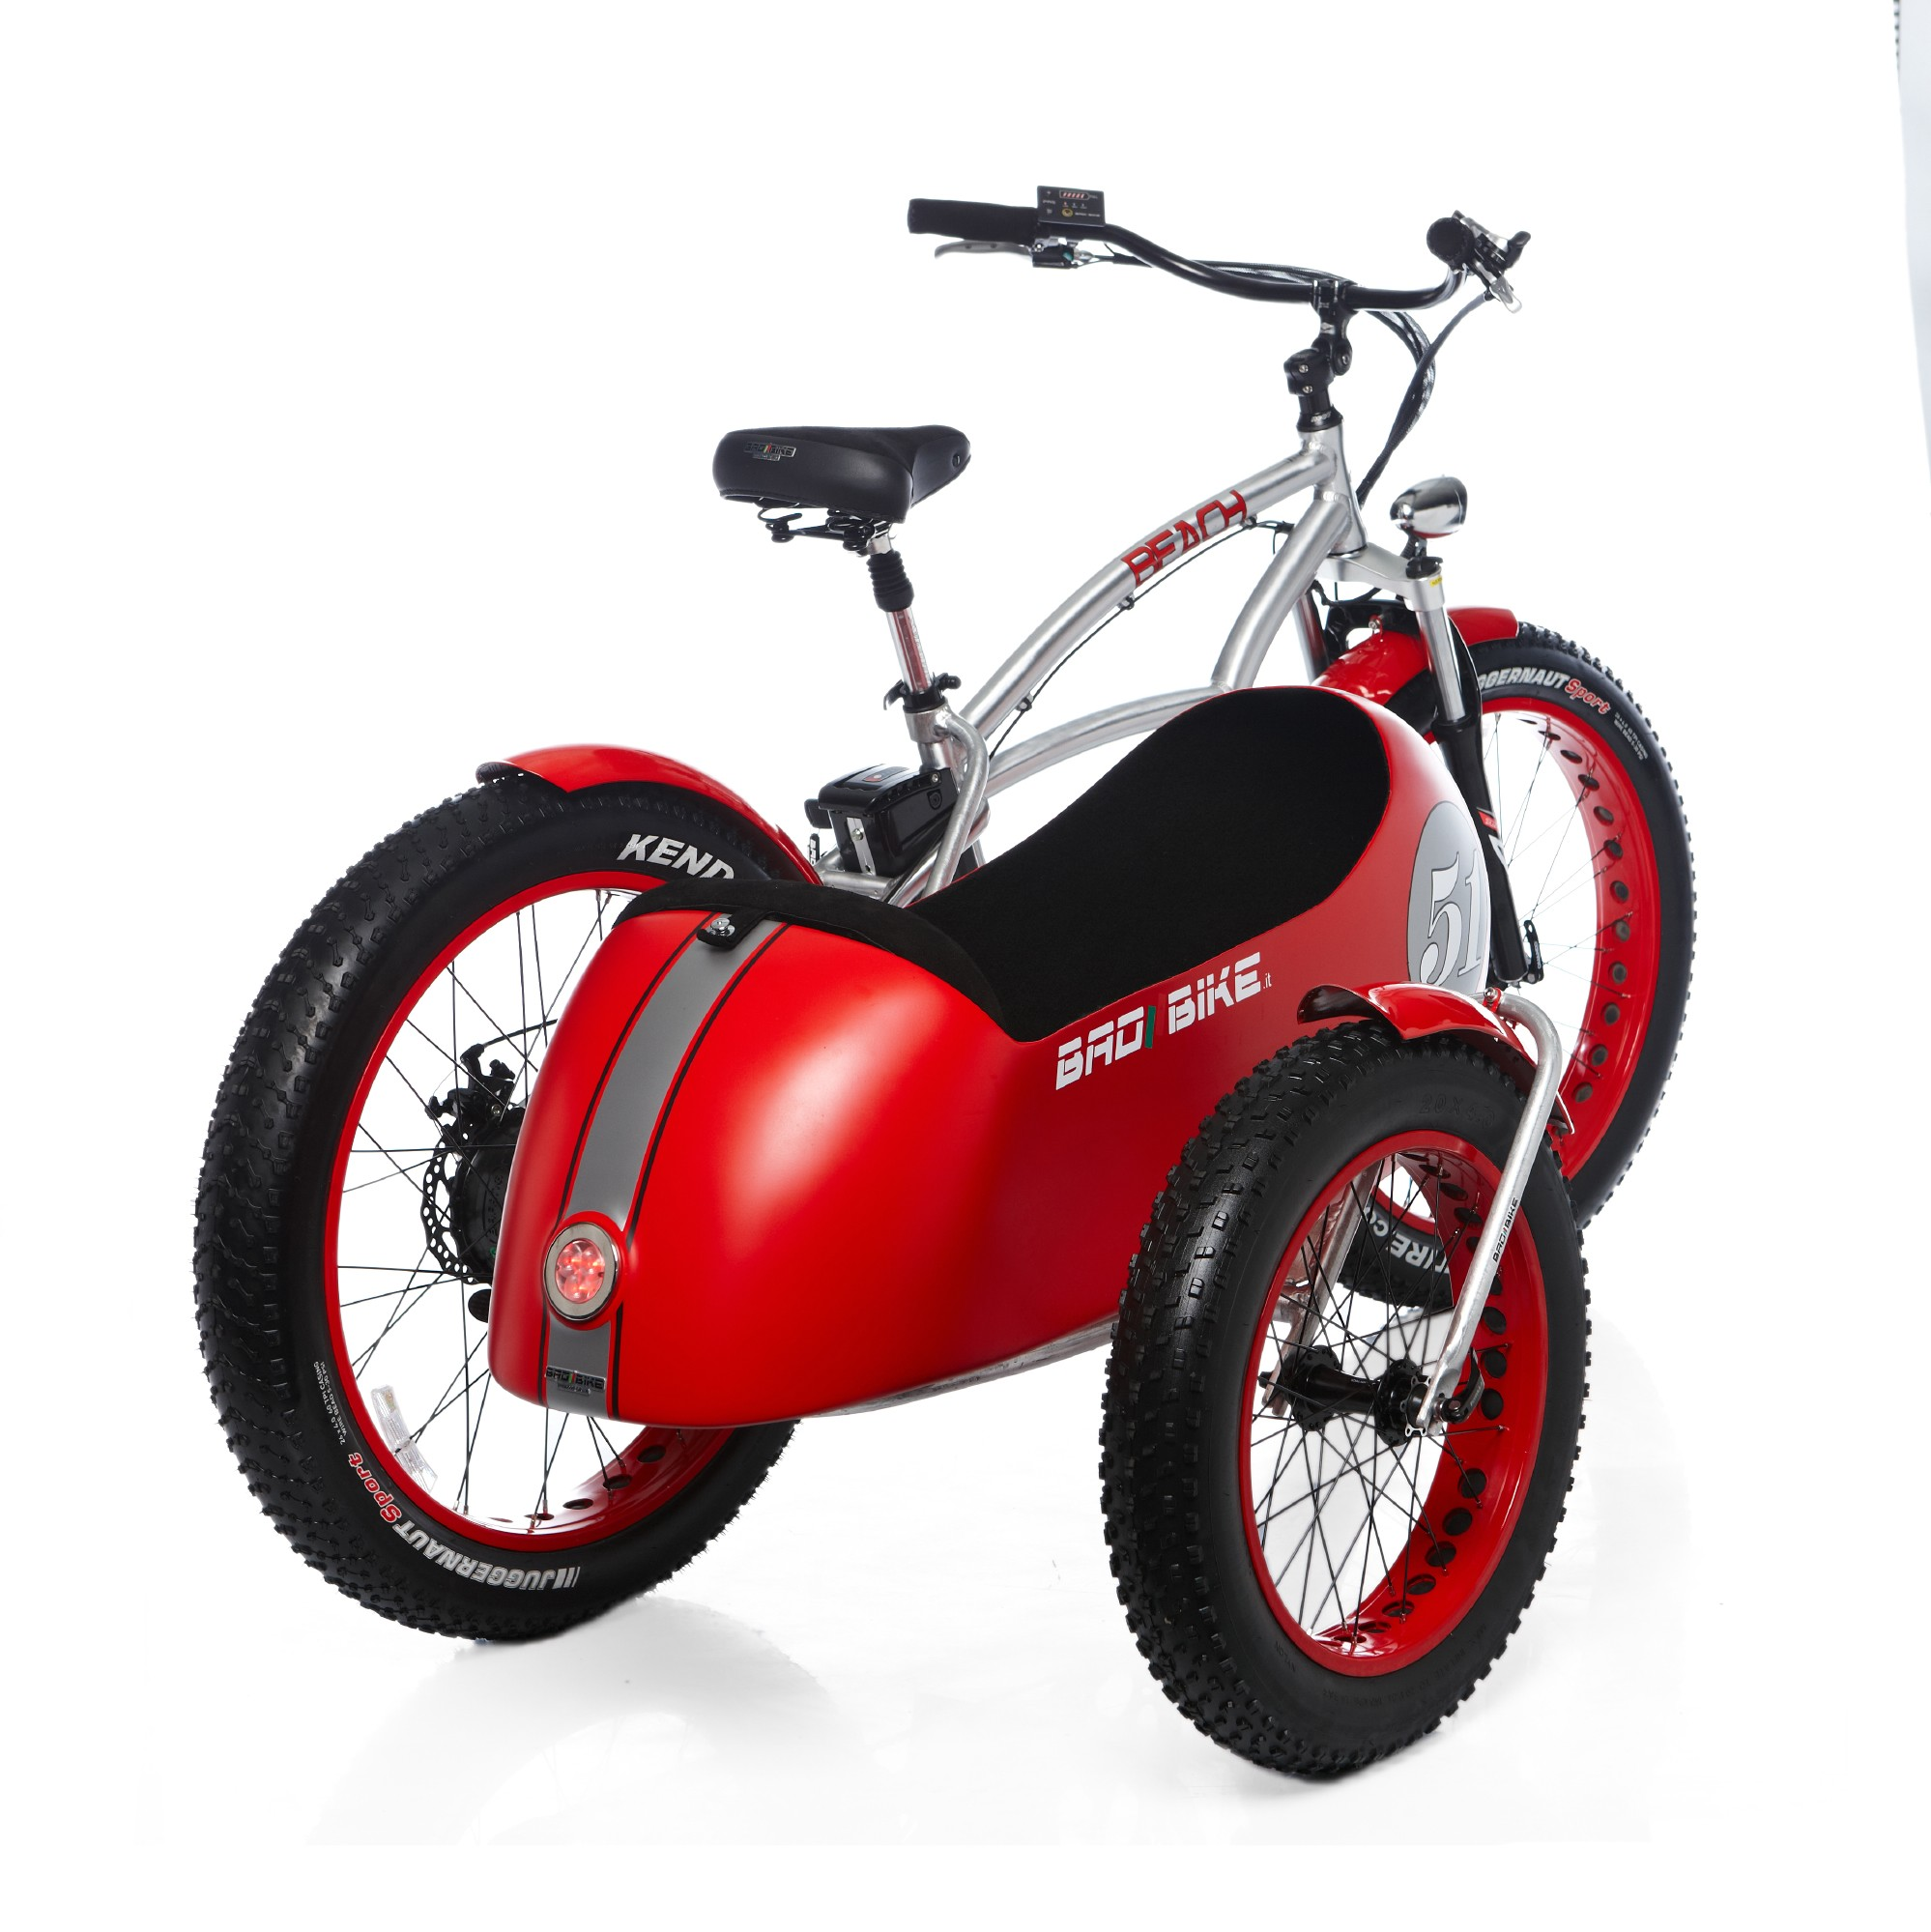 Bad Bike Beach Vintage Fat The Electric Sidecar Bicycle Looks So Bmw